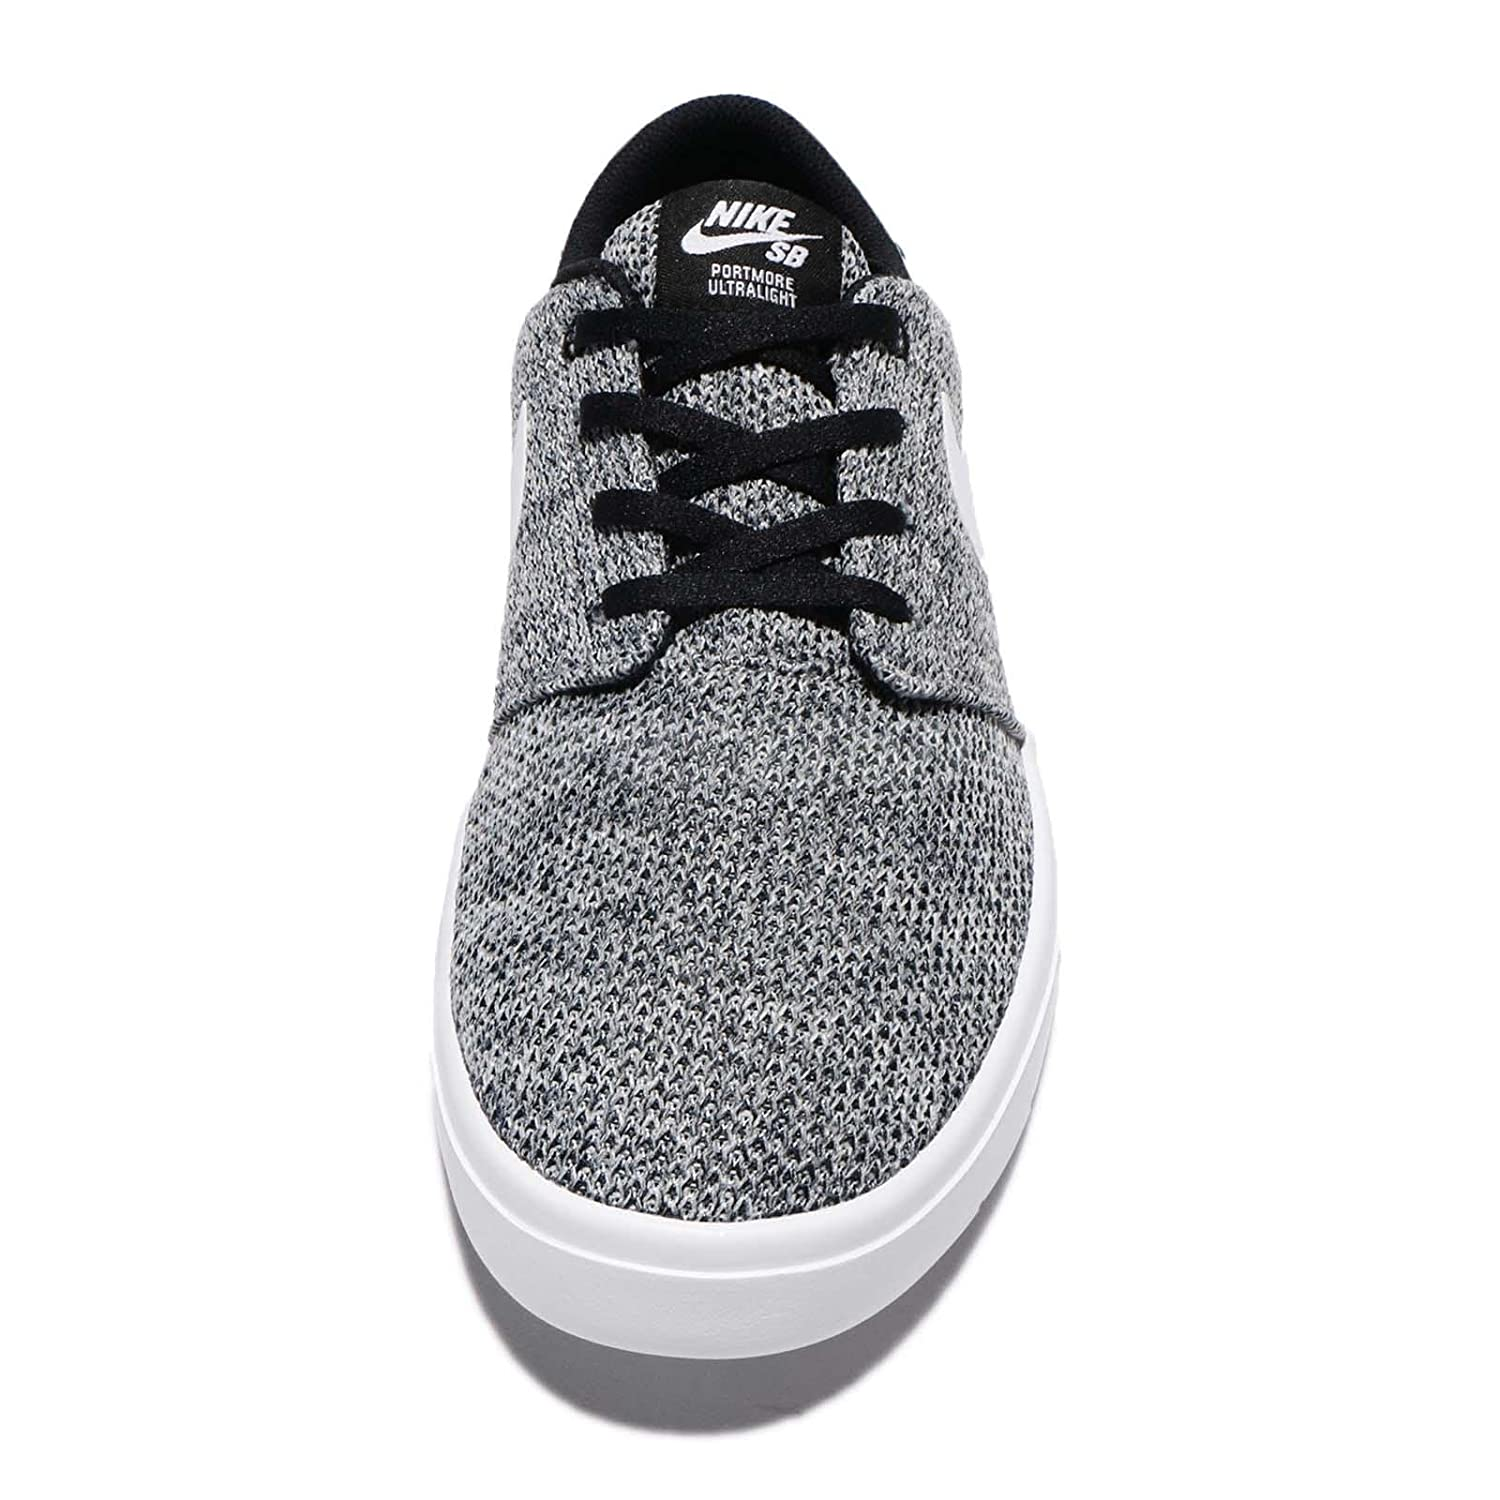 competitive price 511e0 eb683 NIKE SB PORTMORE II ULTRALIGHT SKATE MEN SHOES WOLF GREY 880271-012 SIZE 12  NEW  Amazon.ca  Sports   Outdoors